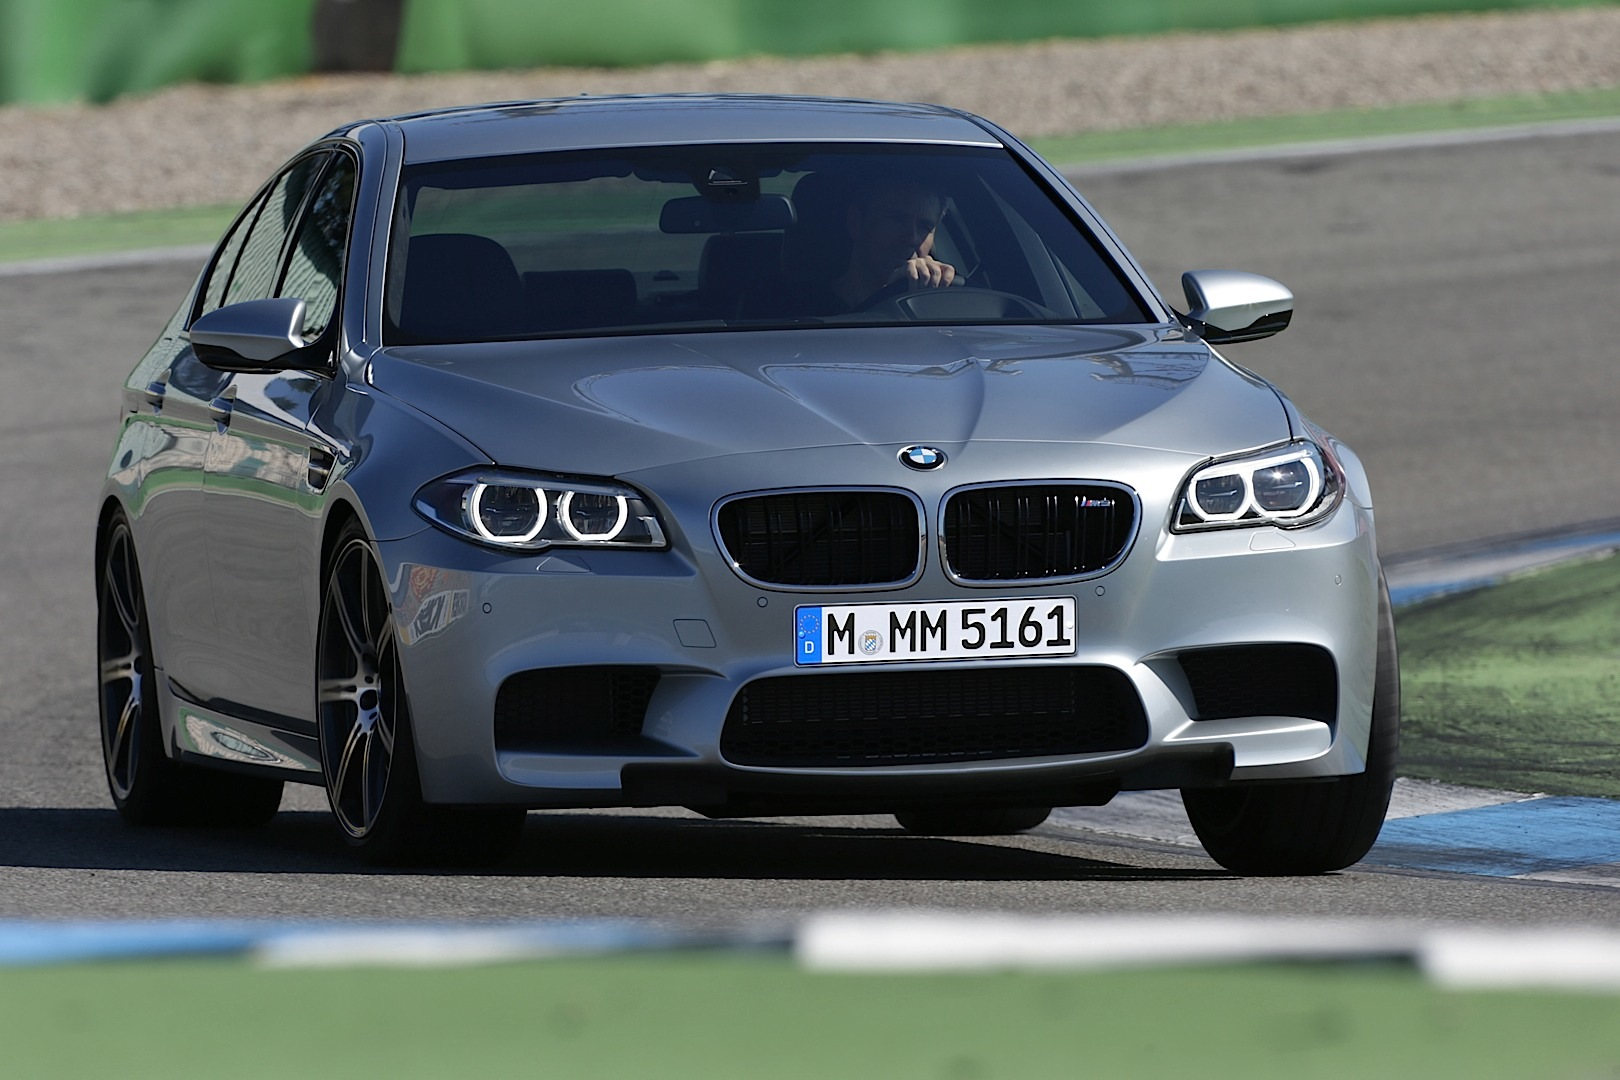 2014 Bmw F10 M5 Lci Officially Unveiled Autoevolution